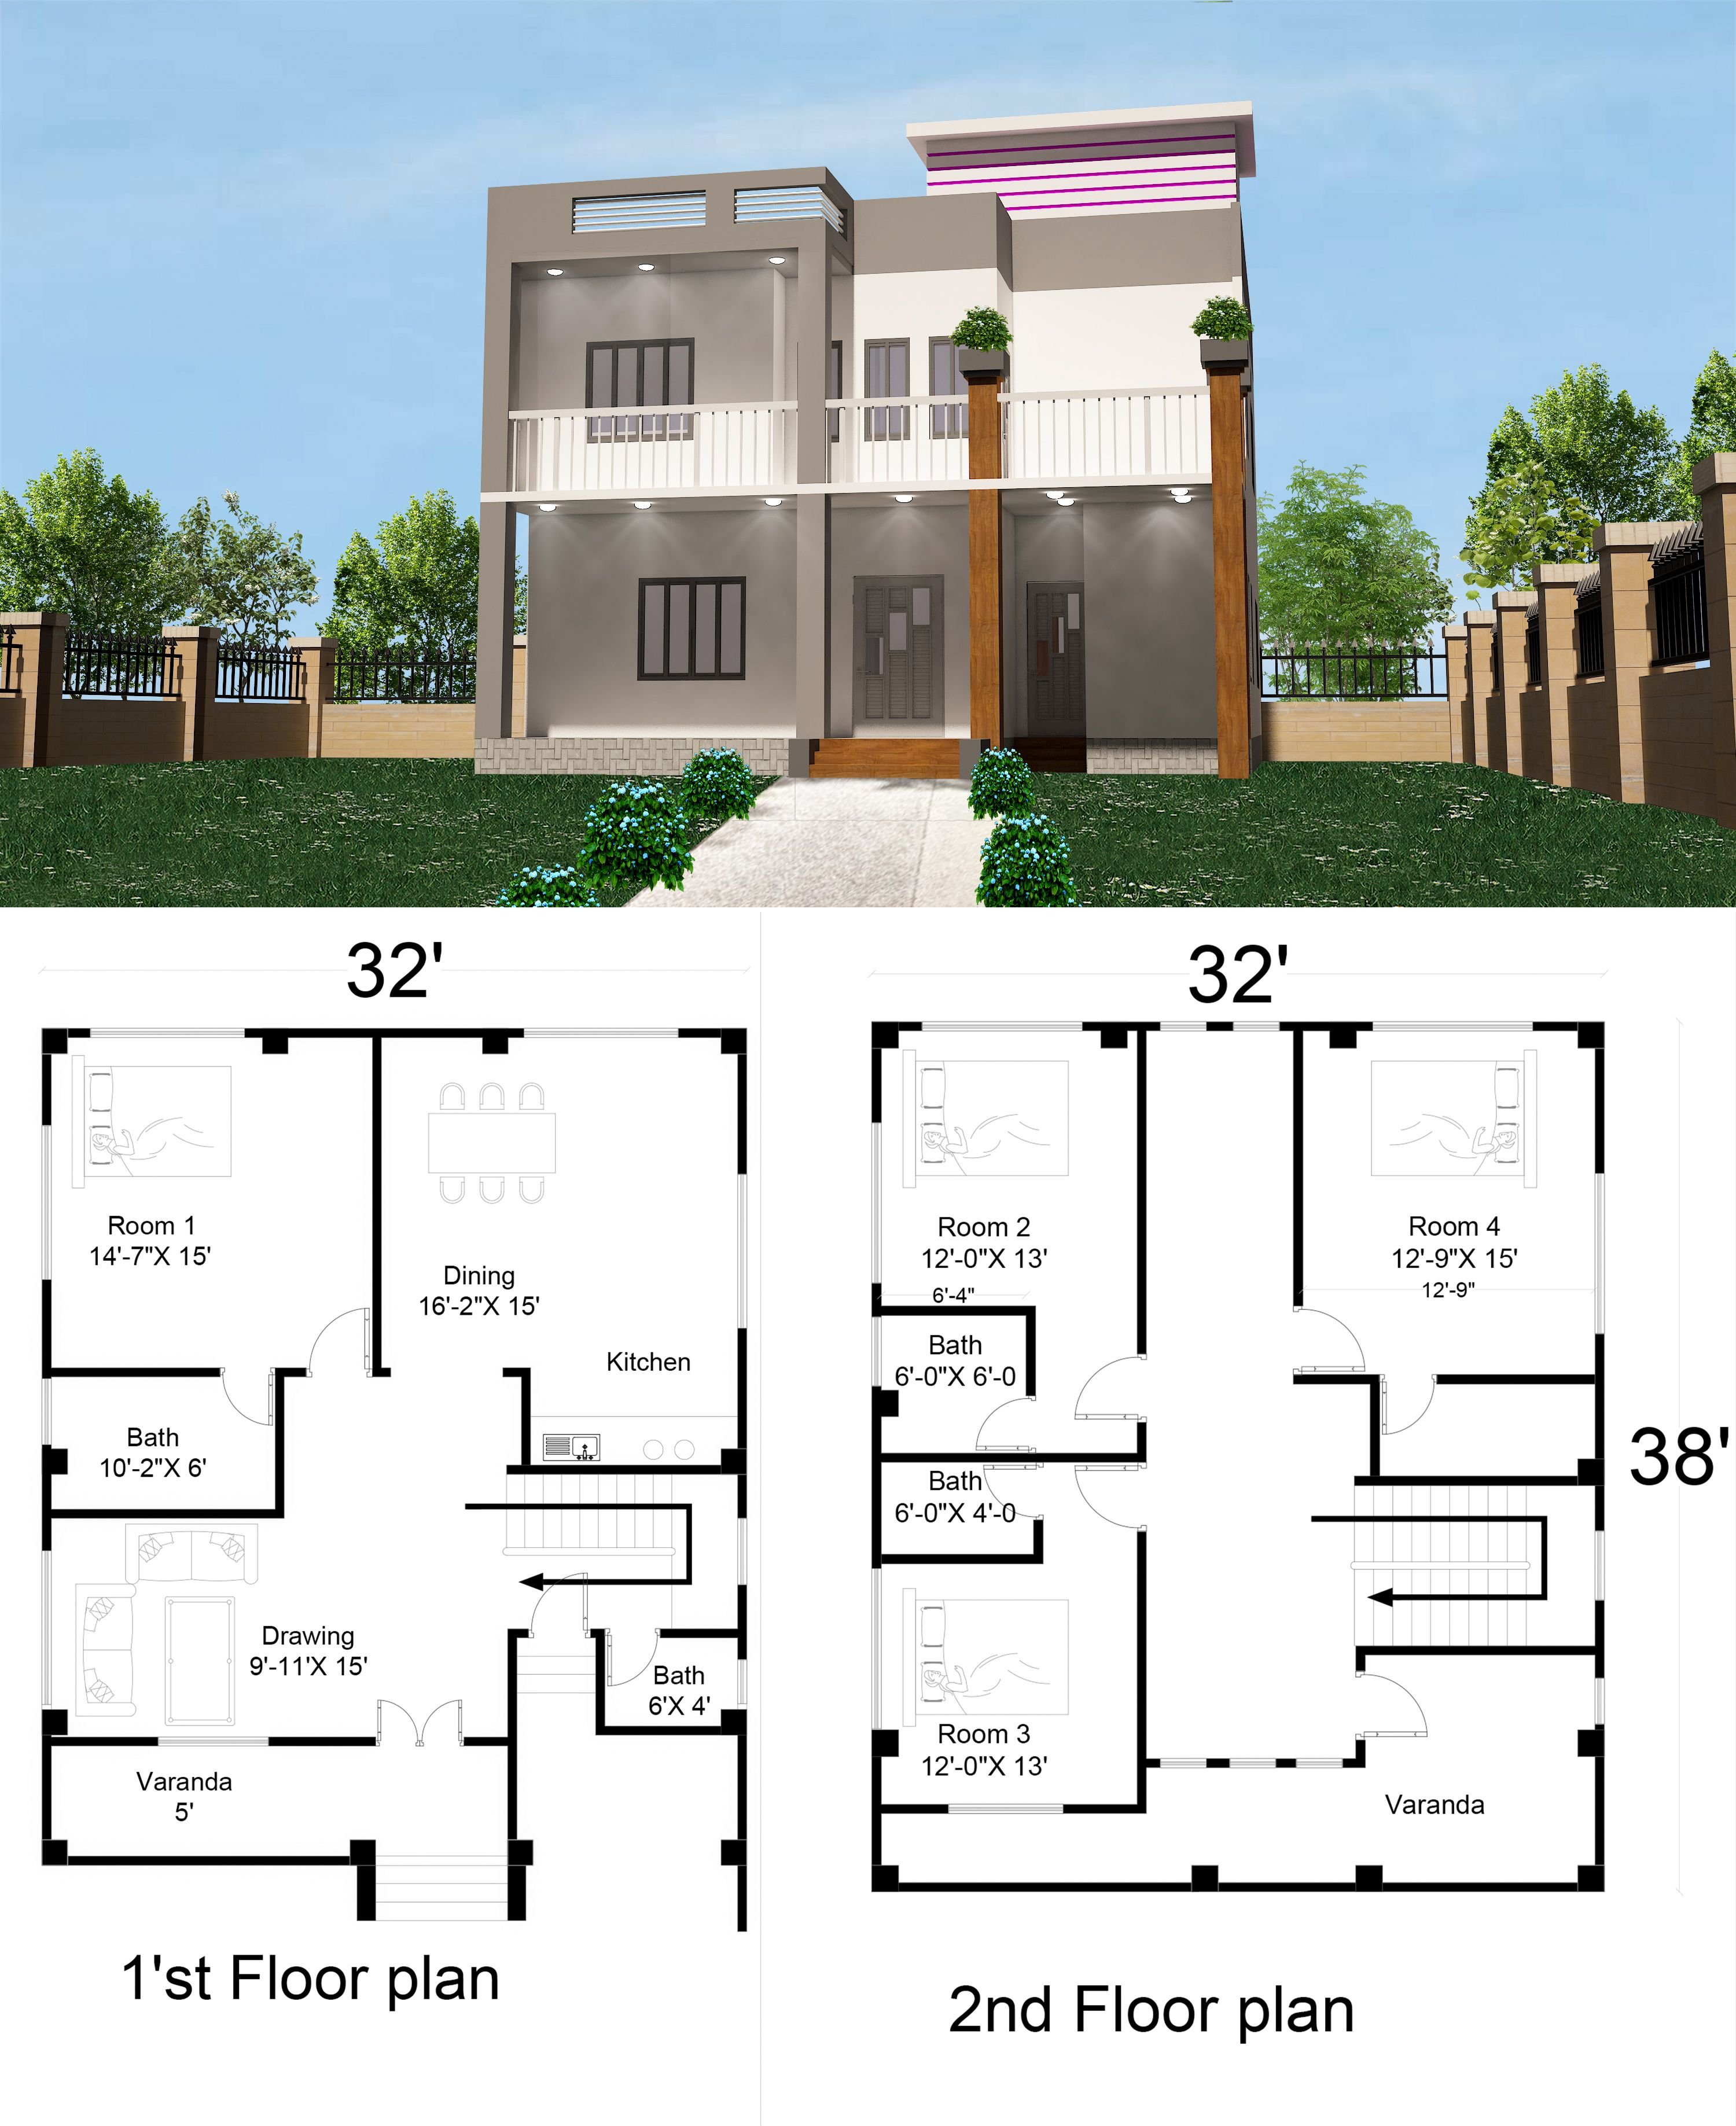 Simple 2 Storey House Design With Floor Plan 32 X40 4 Bed Room 2 Storey House Design 2 Story House Design Simple House Plans